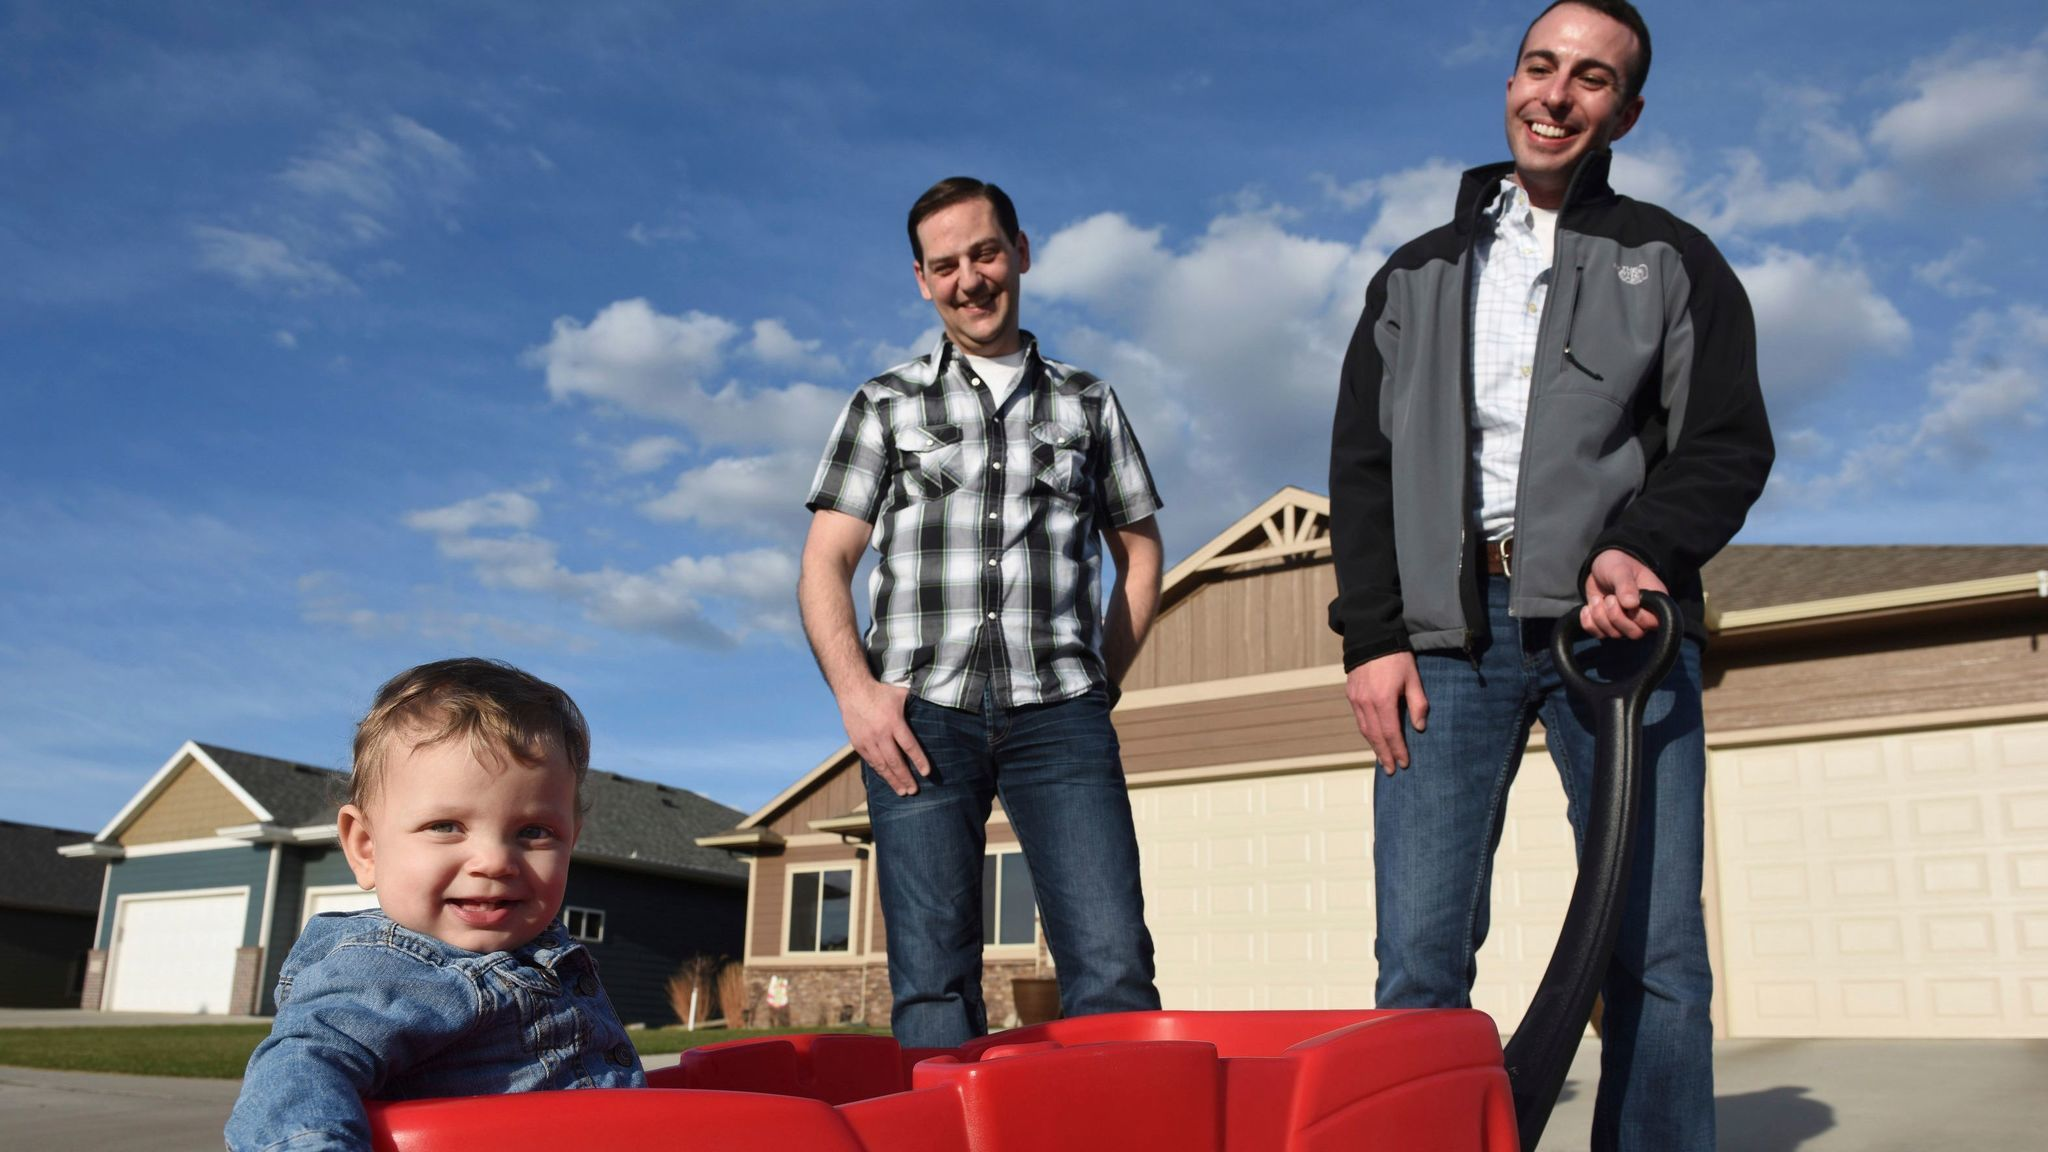 Greg Roling, center, and Larry Sandal take a stroll with their 9-month-old adopted daughter, Emmersyn Julia Roling, in Sioux Falls, S.D., in April 2017.